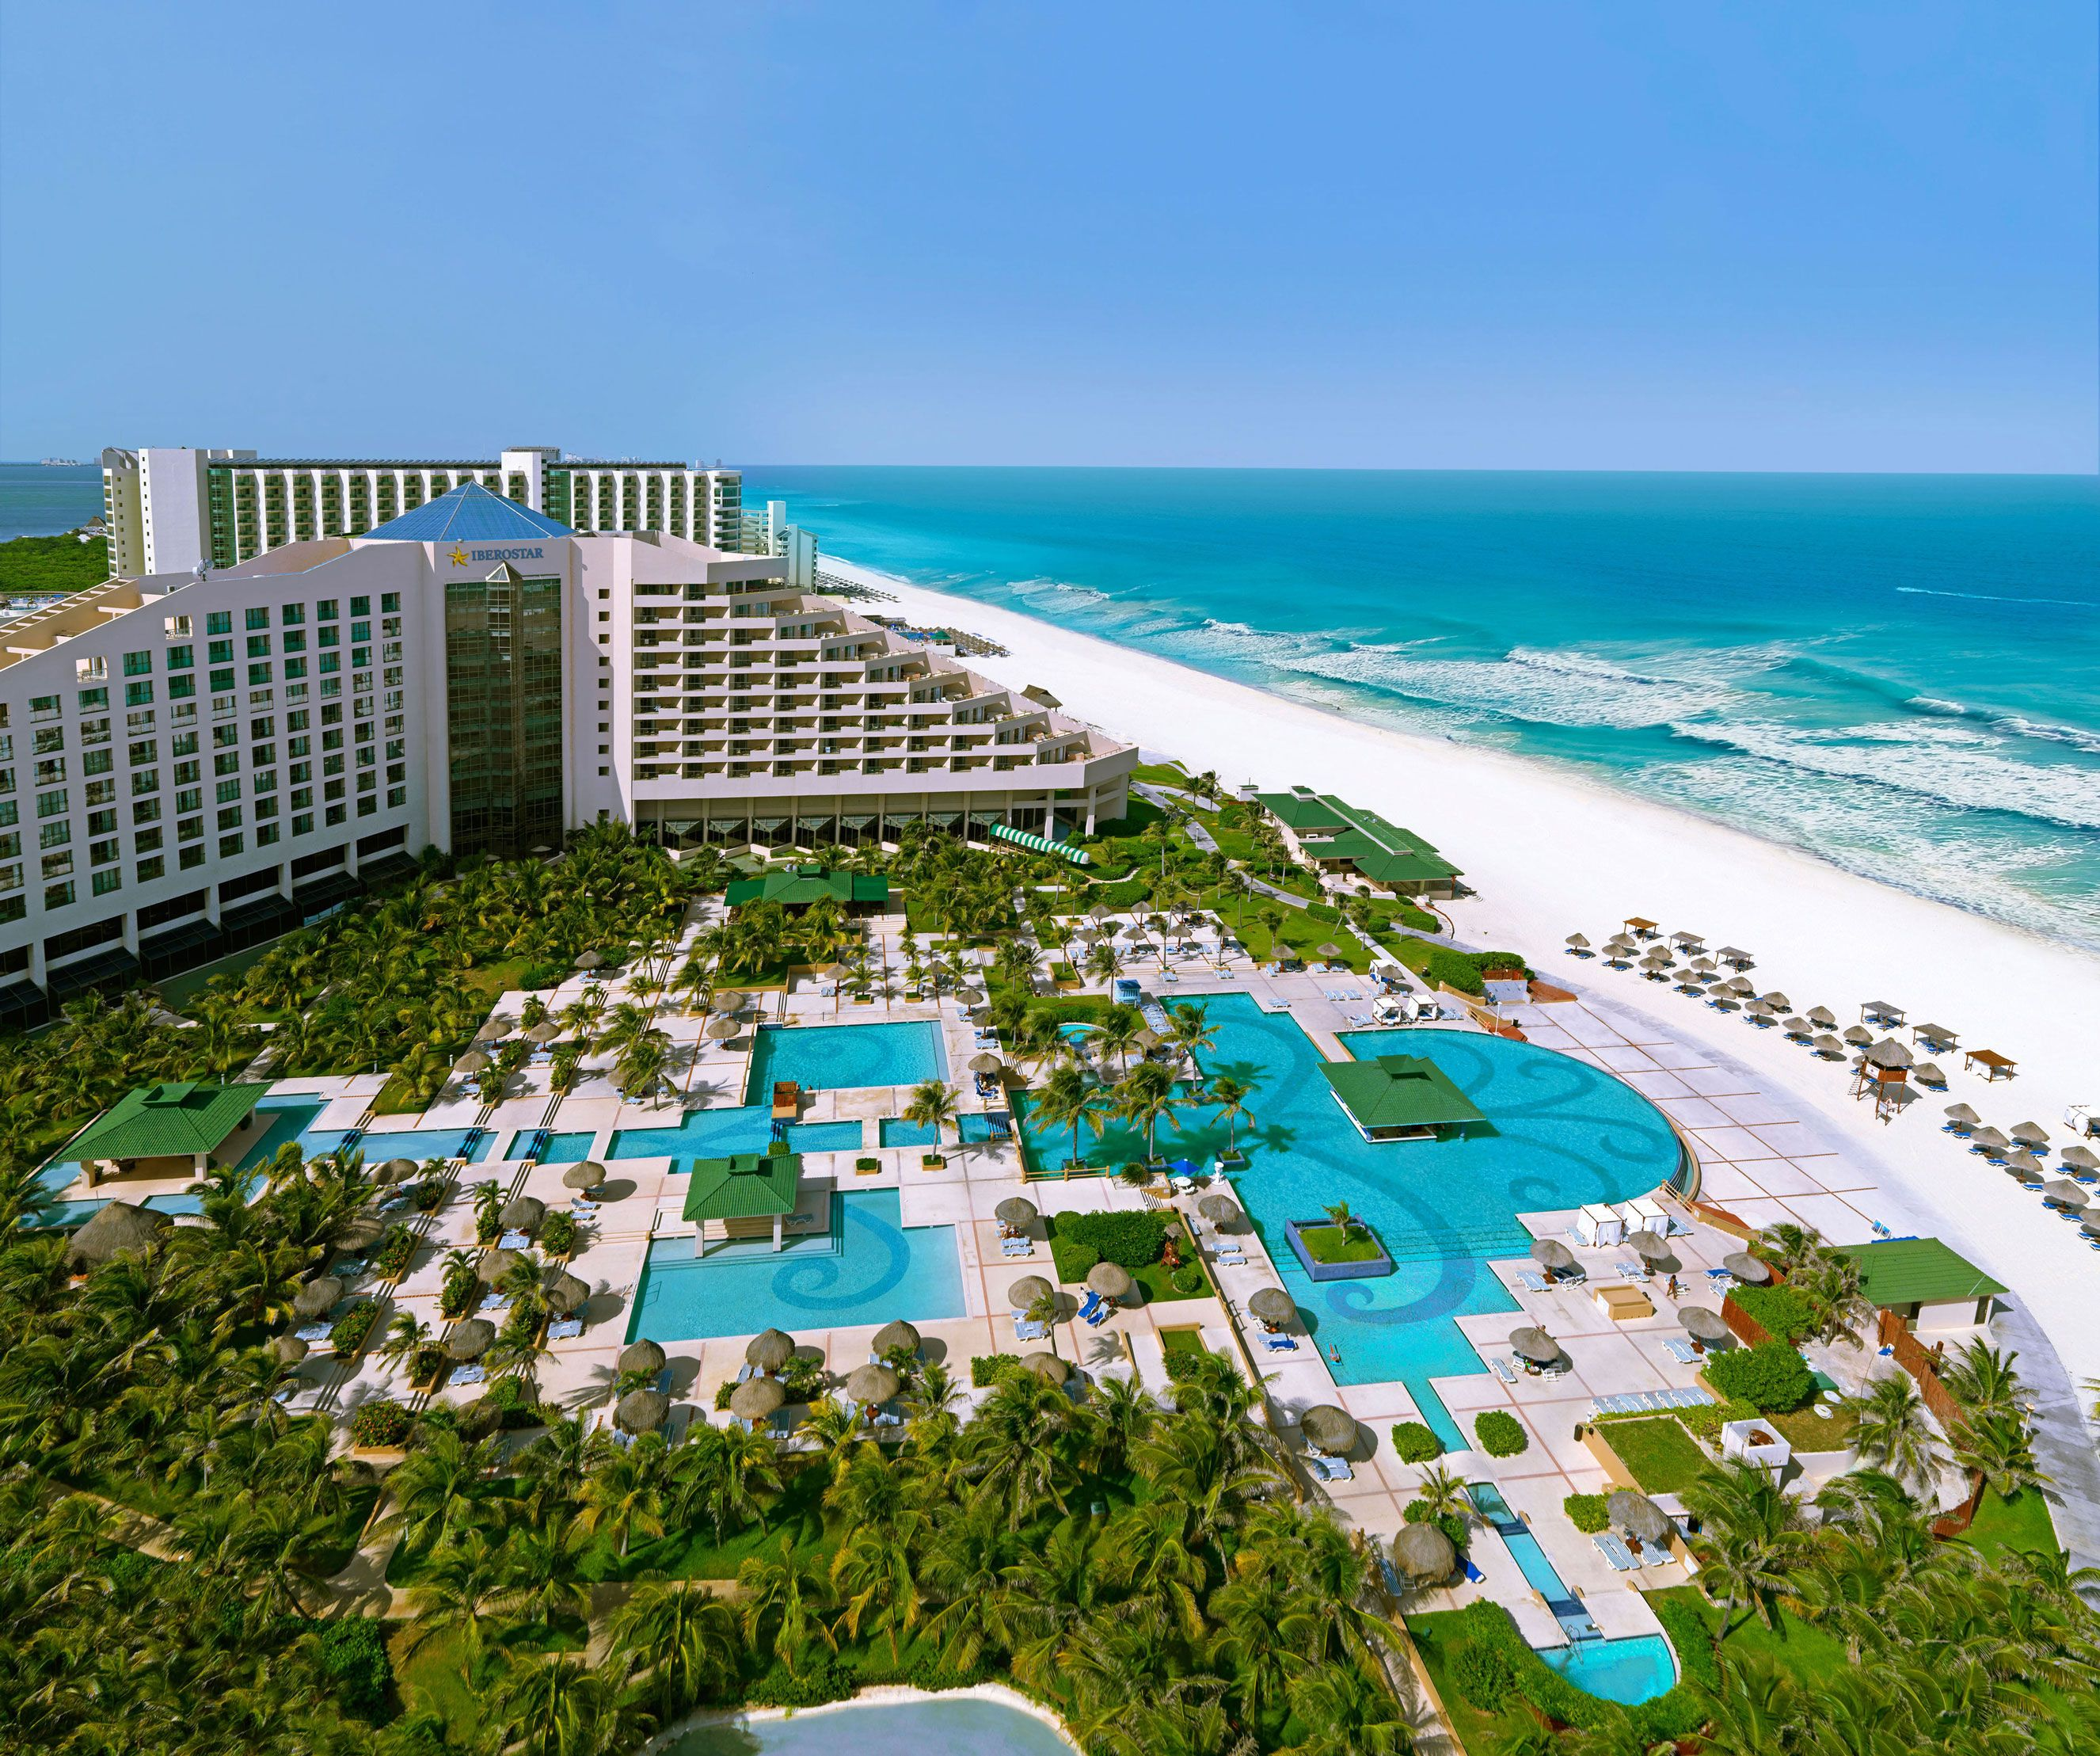 For 10 Years The Iberostar Cancun Hotel Has Been Receiving Prestigious Awards Including